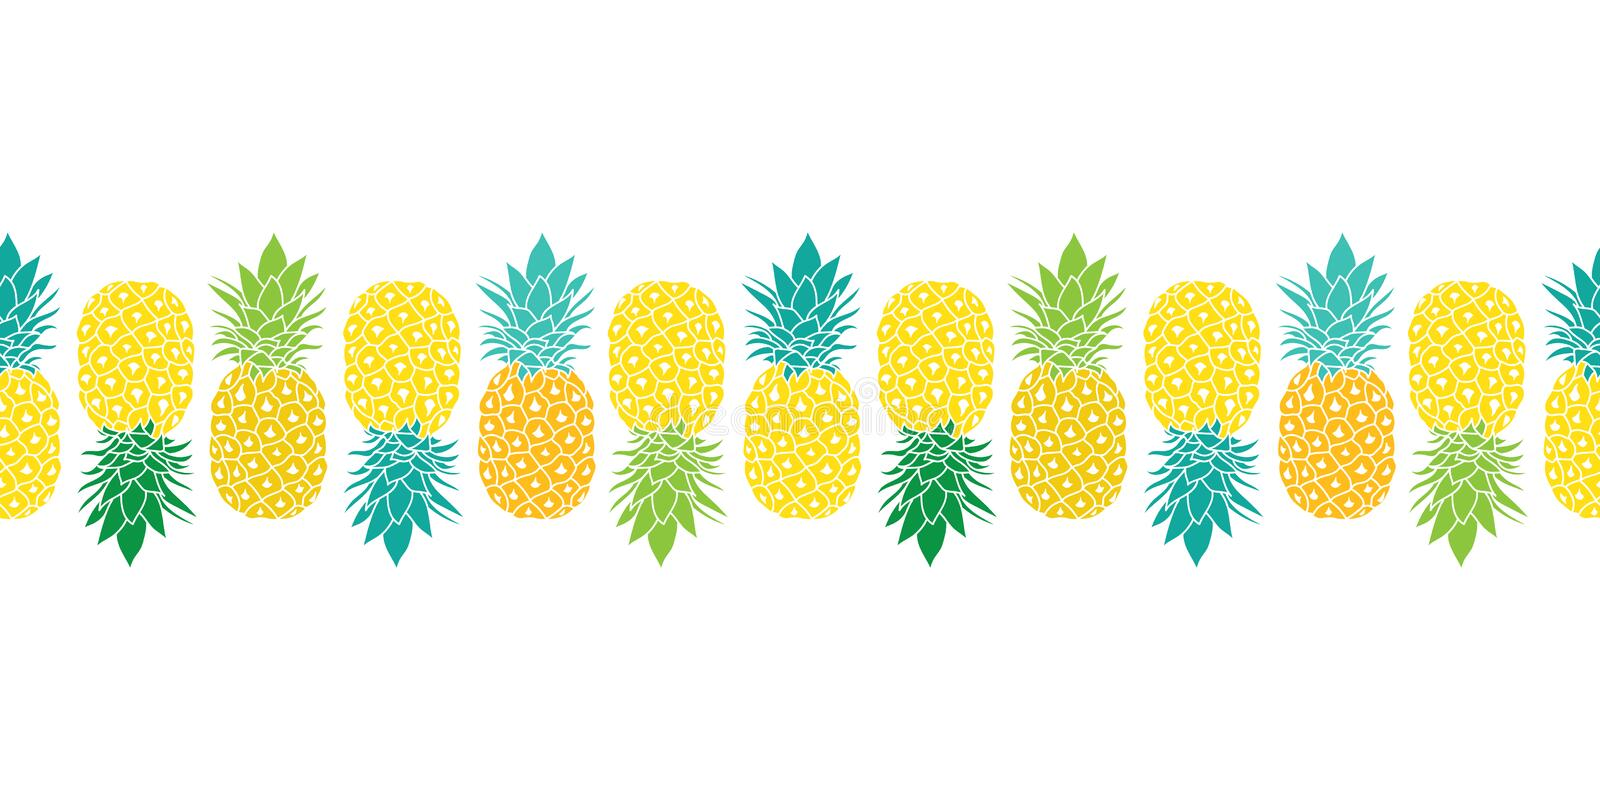 Fresh Pineapples Vector Repeat Seamless Horizontal Pattrern Border in Yellow, Blue and Green Colors. Great for fabric royalty free illustration